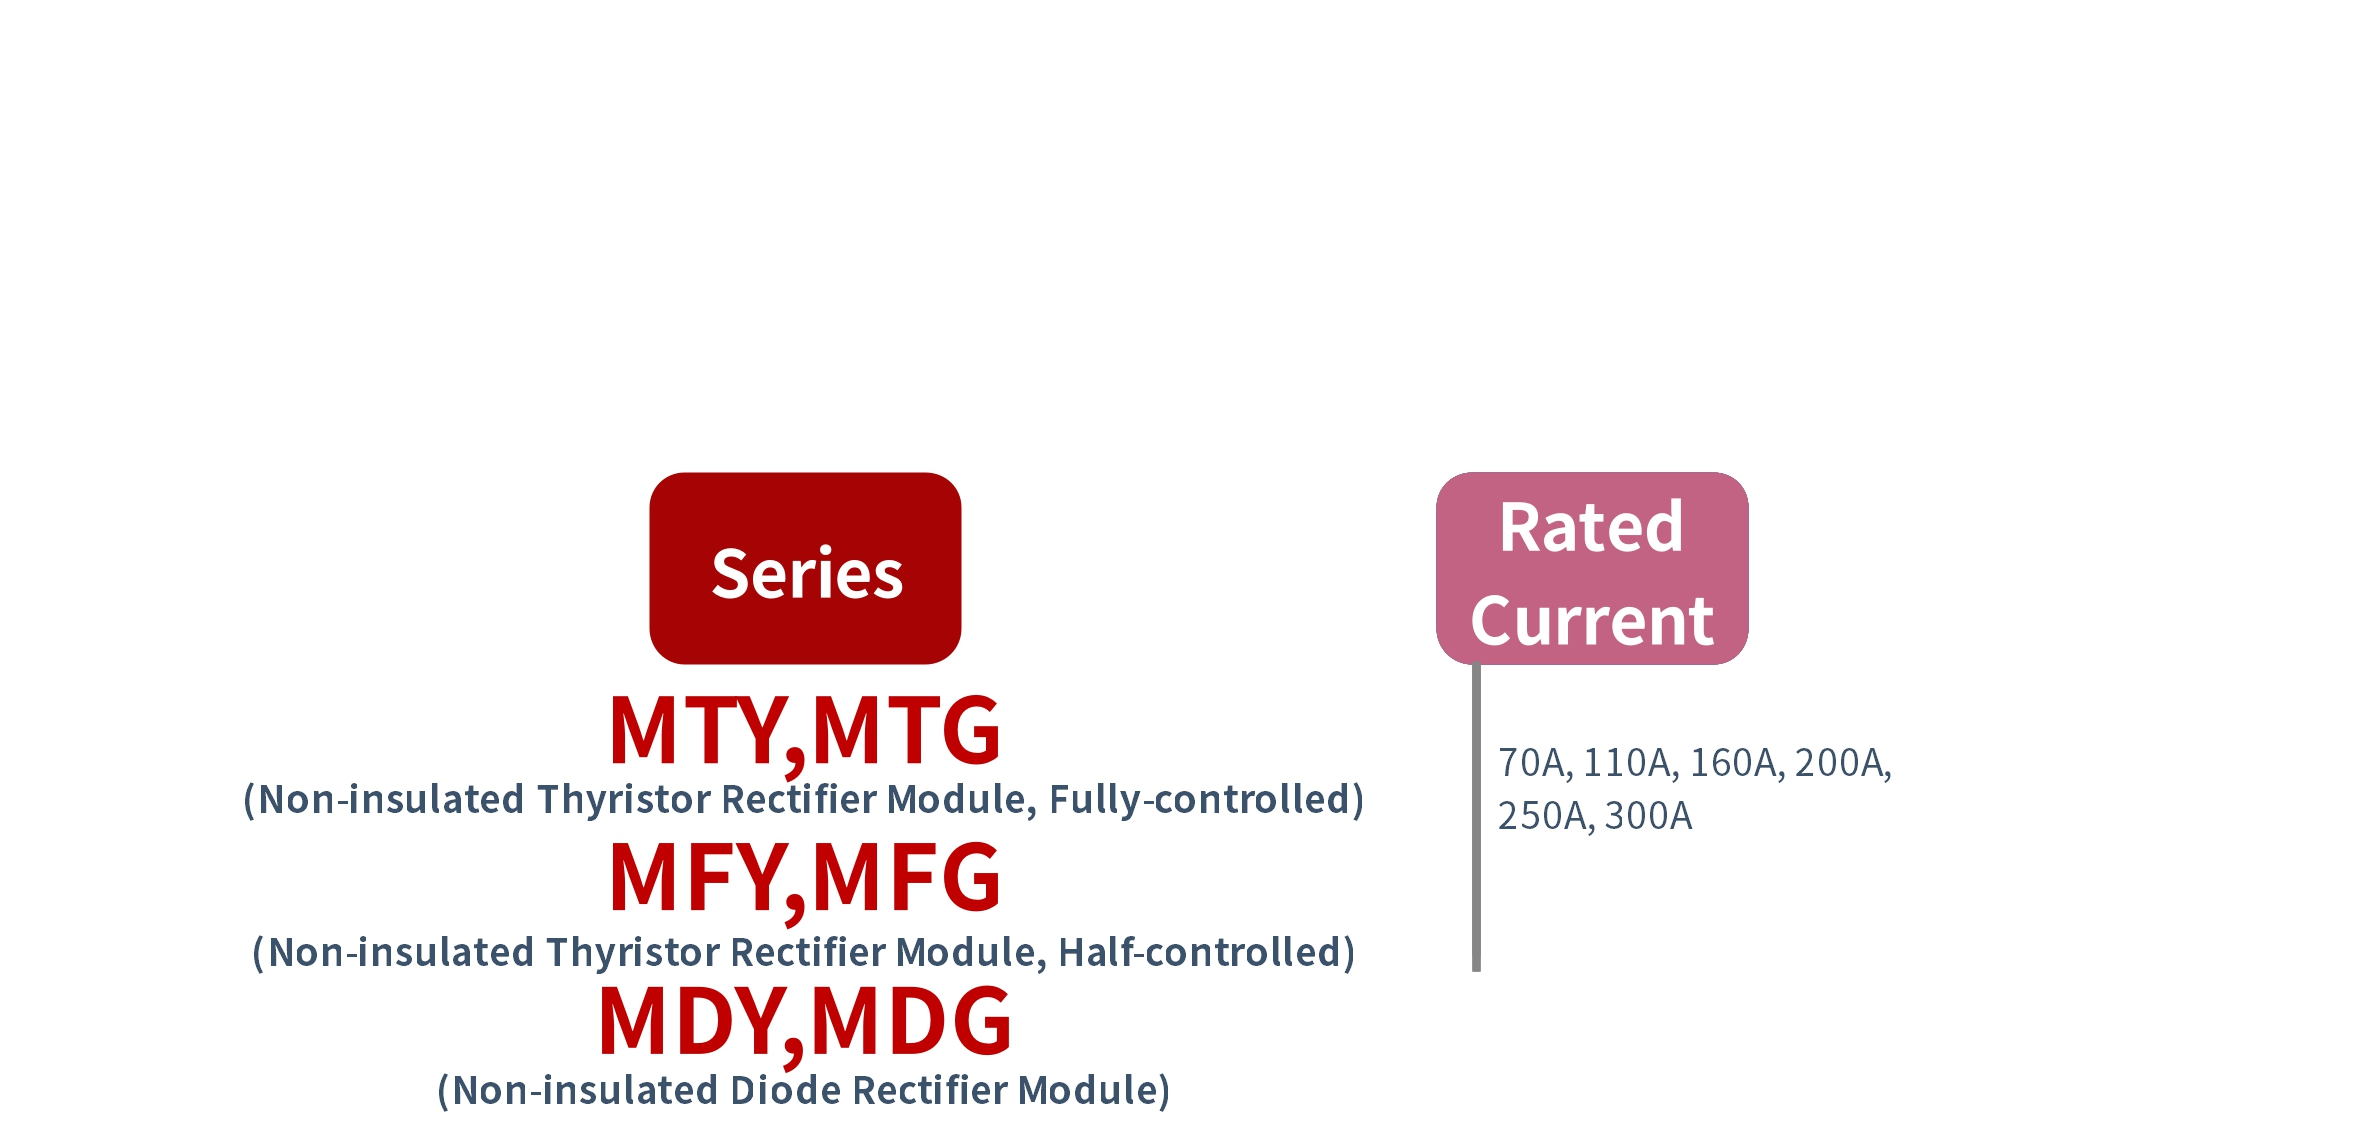 How to order MT, MF, MD Series Solid State Rectifier